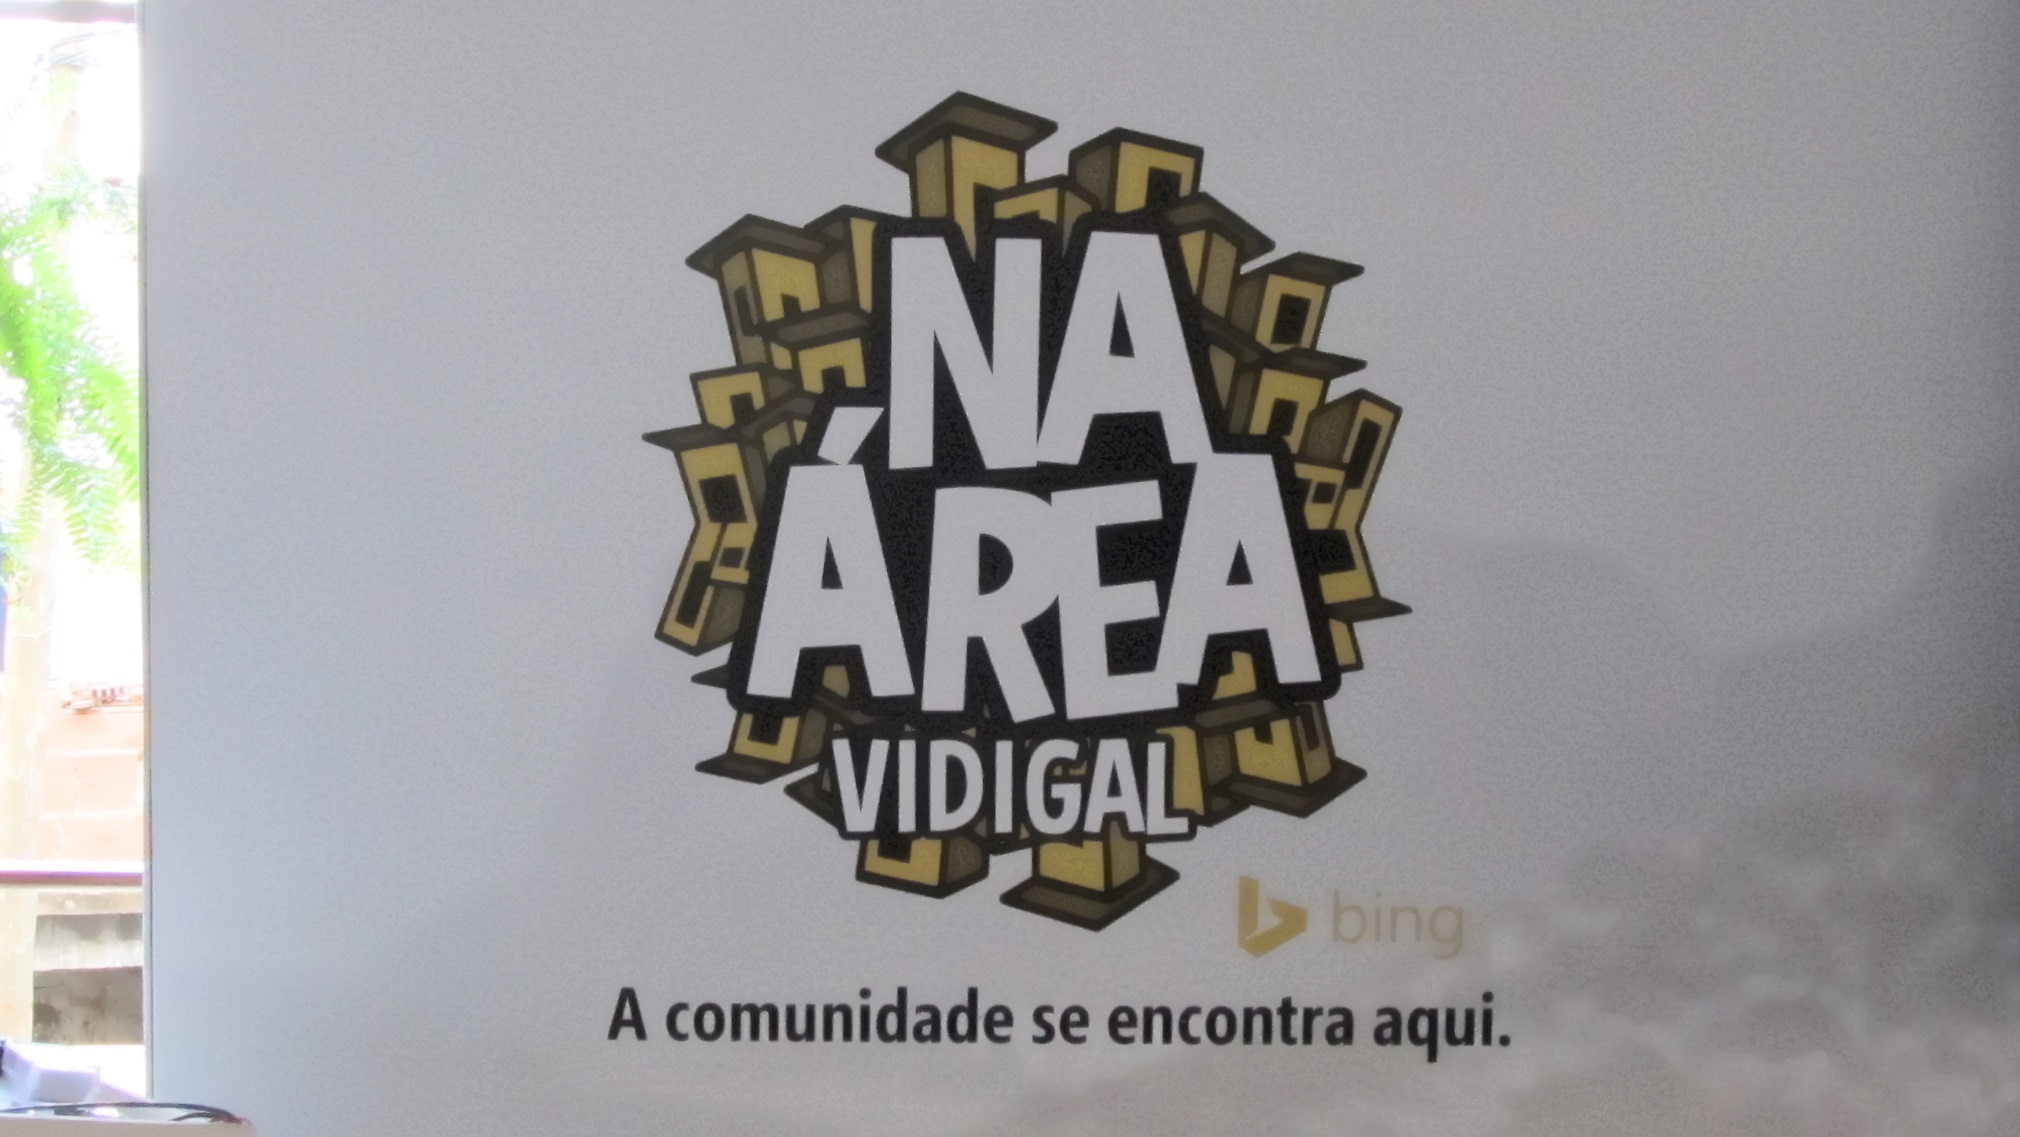 bing vidigal 2